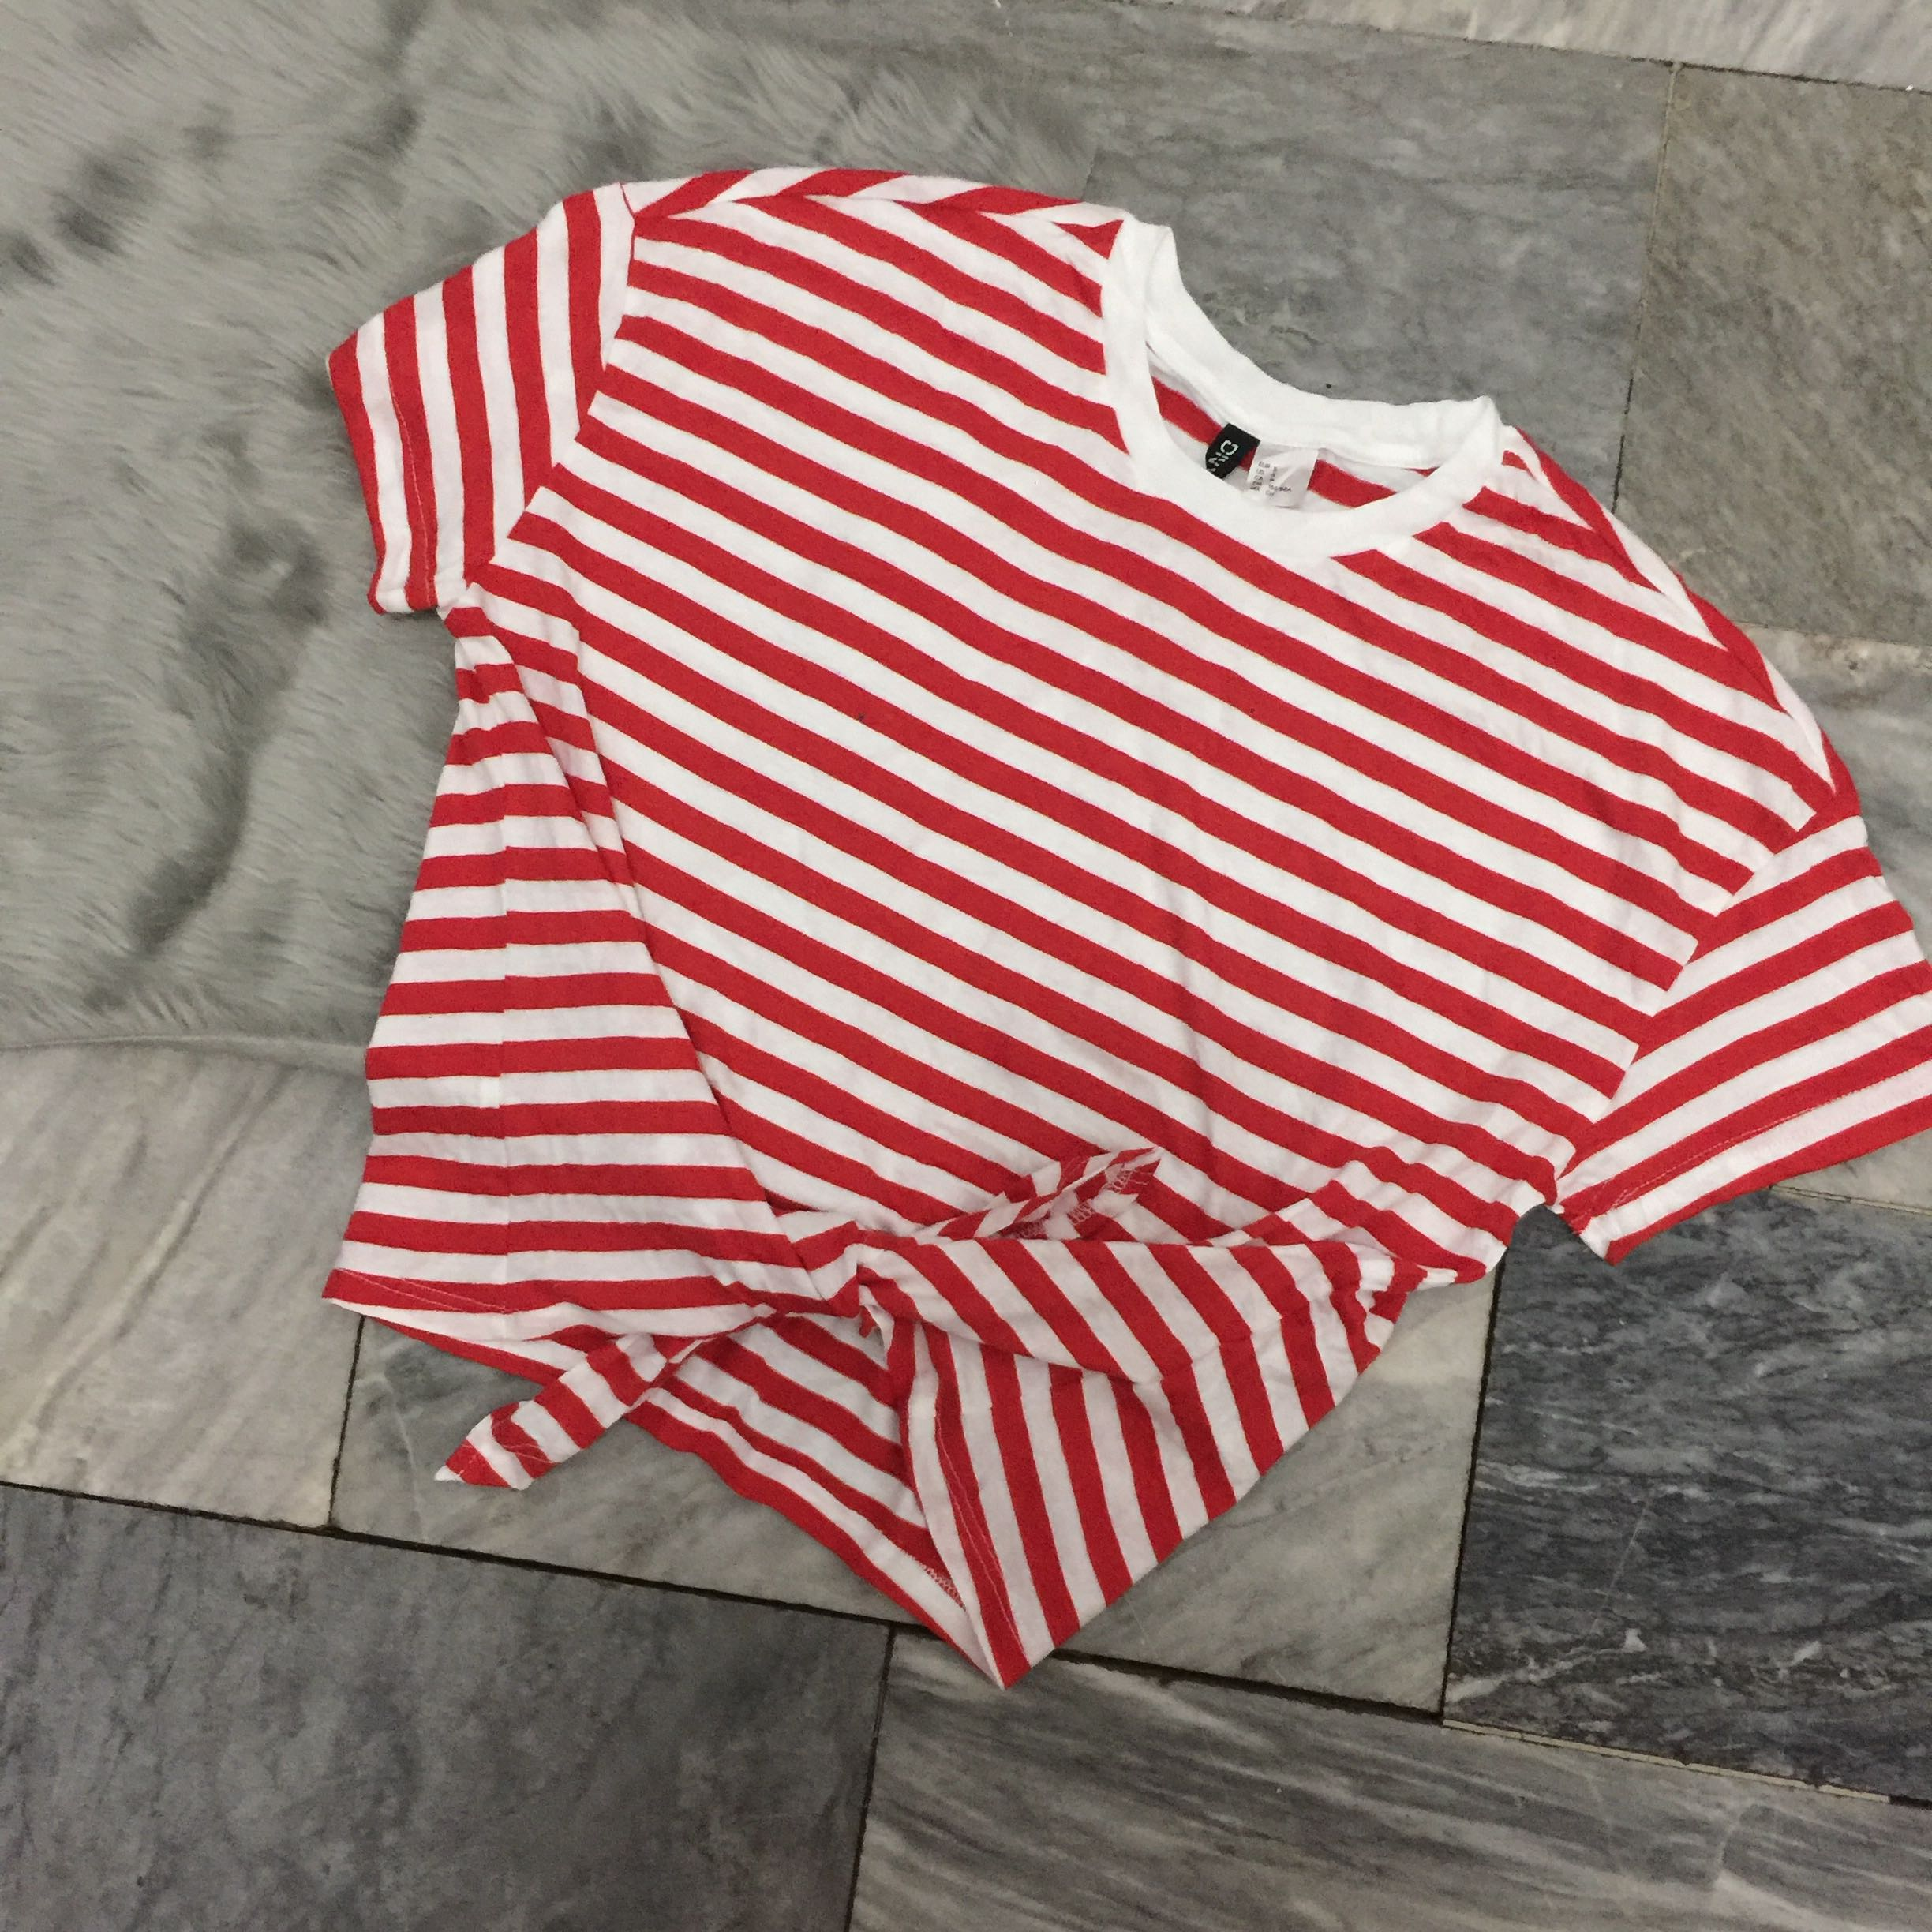 52bb5f1e49 BNWOT H&M Red and White Stripes Tie Crop Top, Women's Fashion, Clothes, Tops  on Carousell